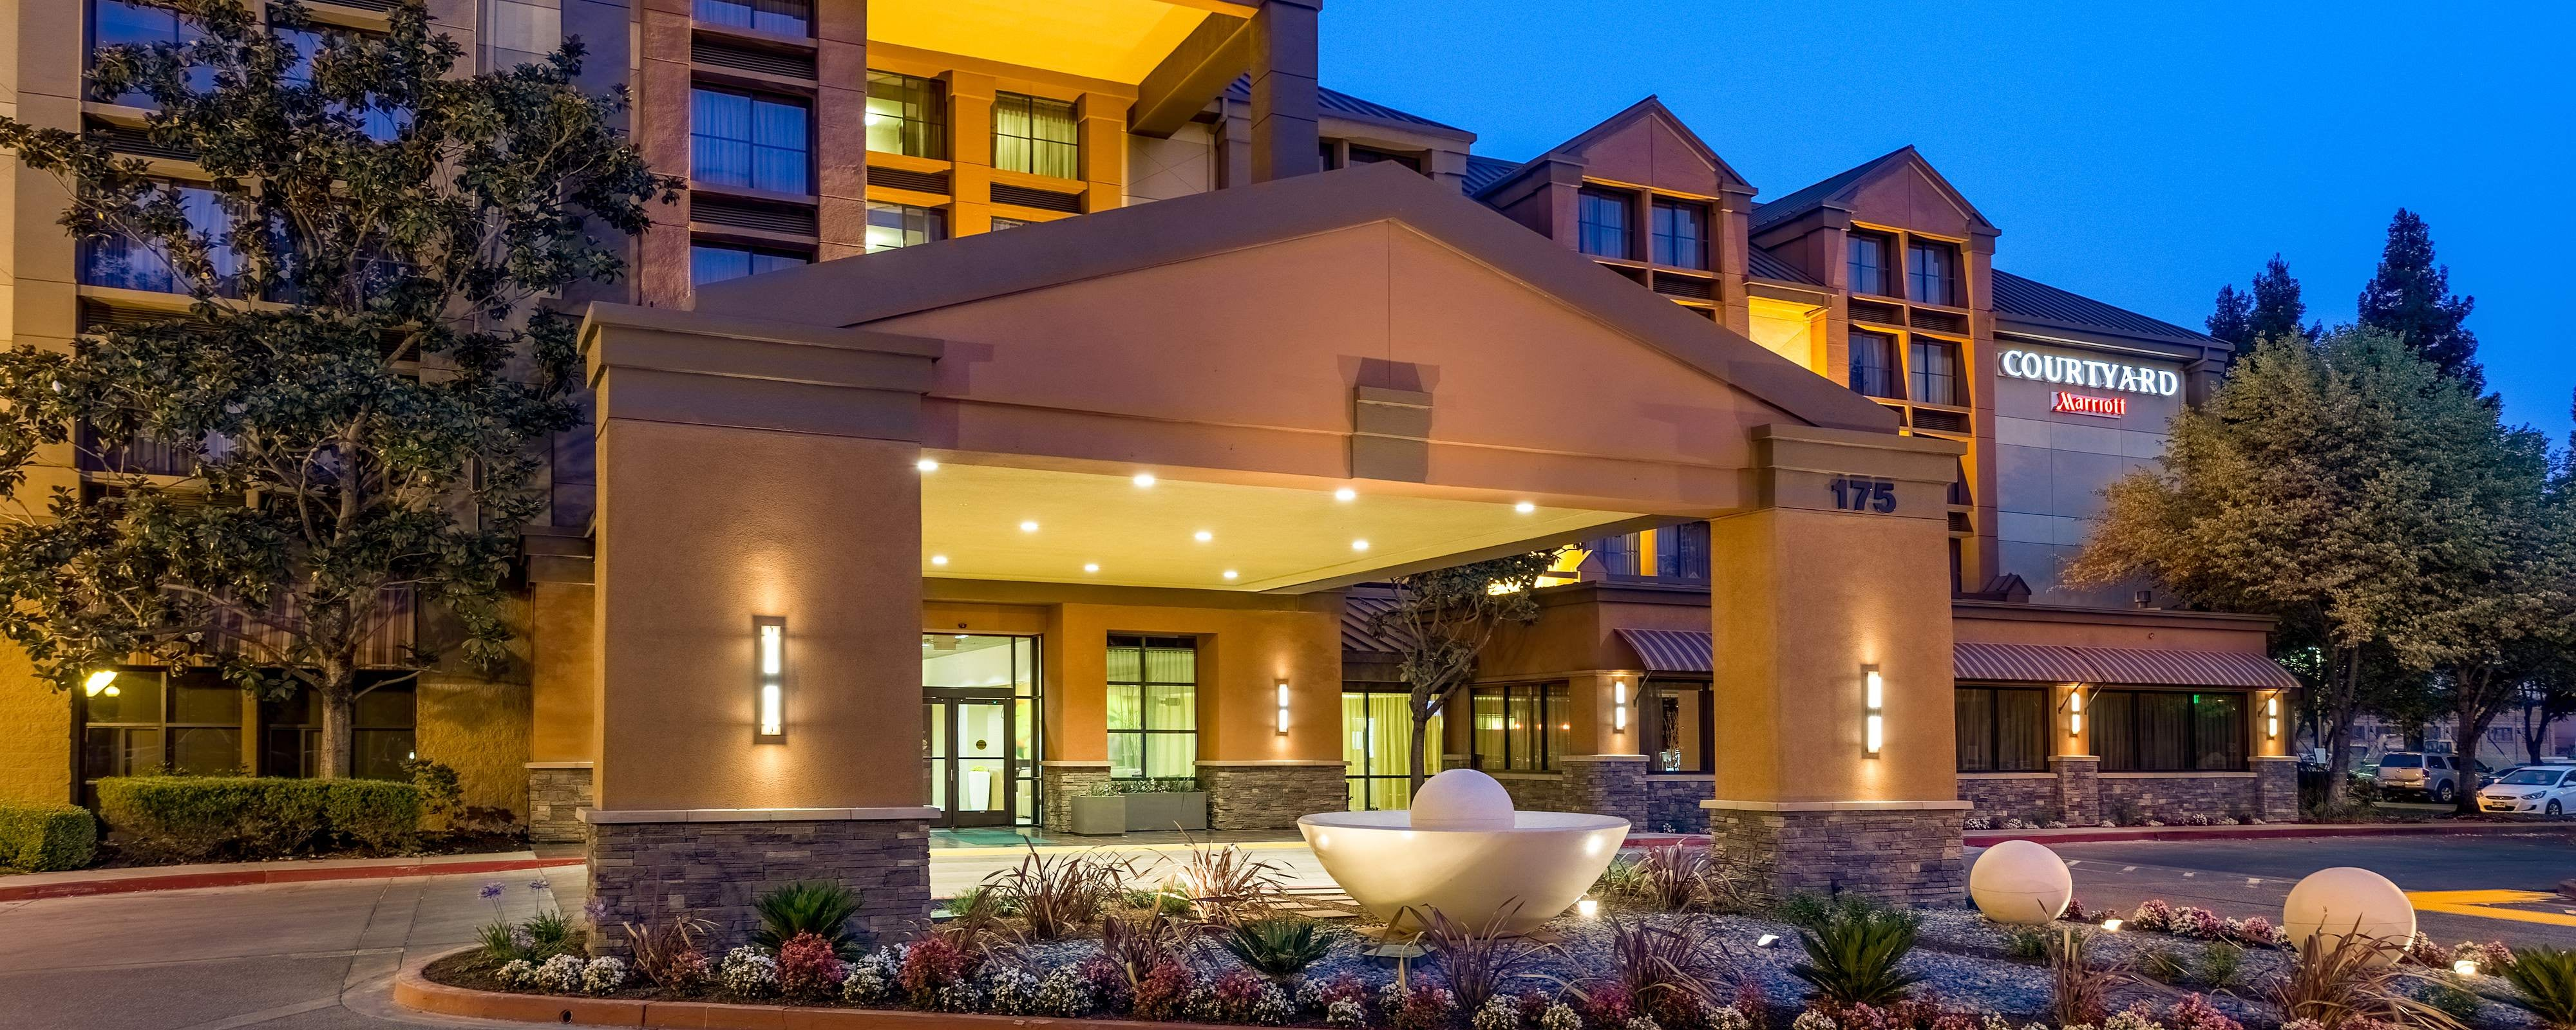 Courtyard by Marriott Santa Rosa Exterior